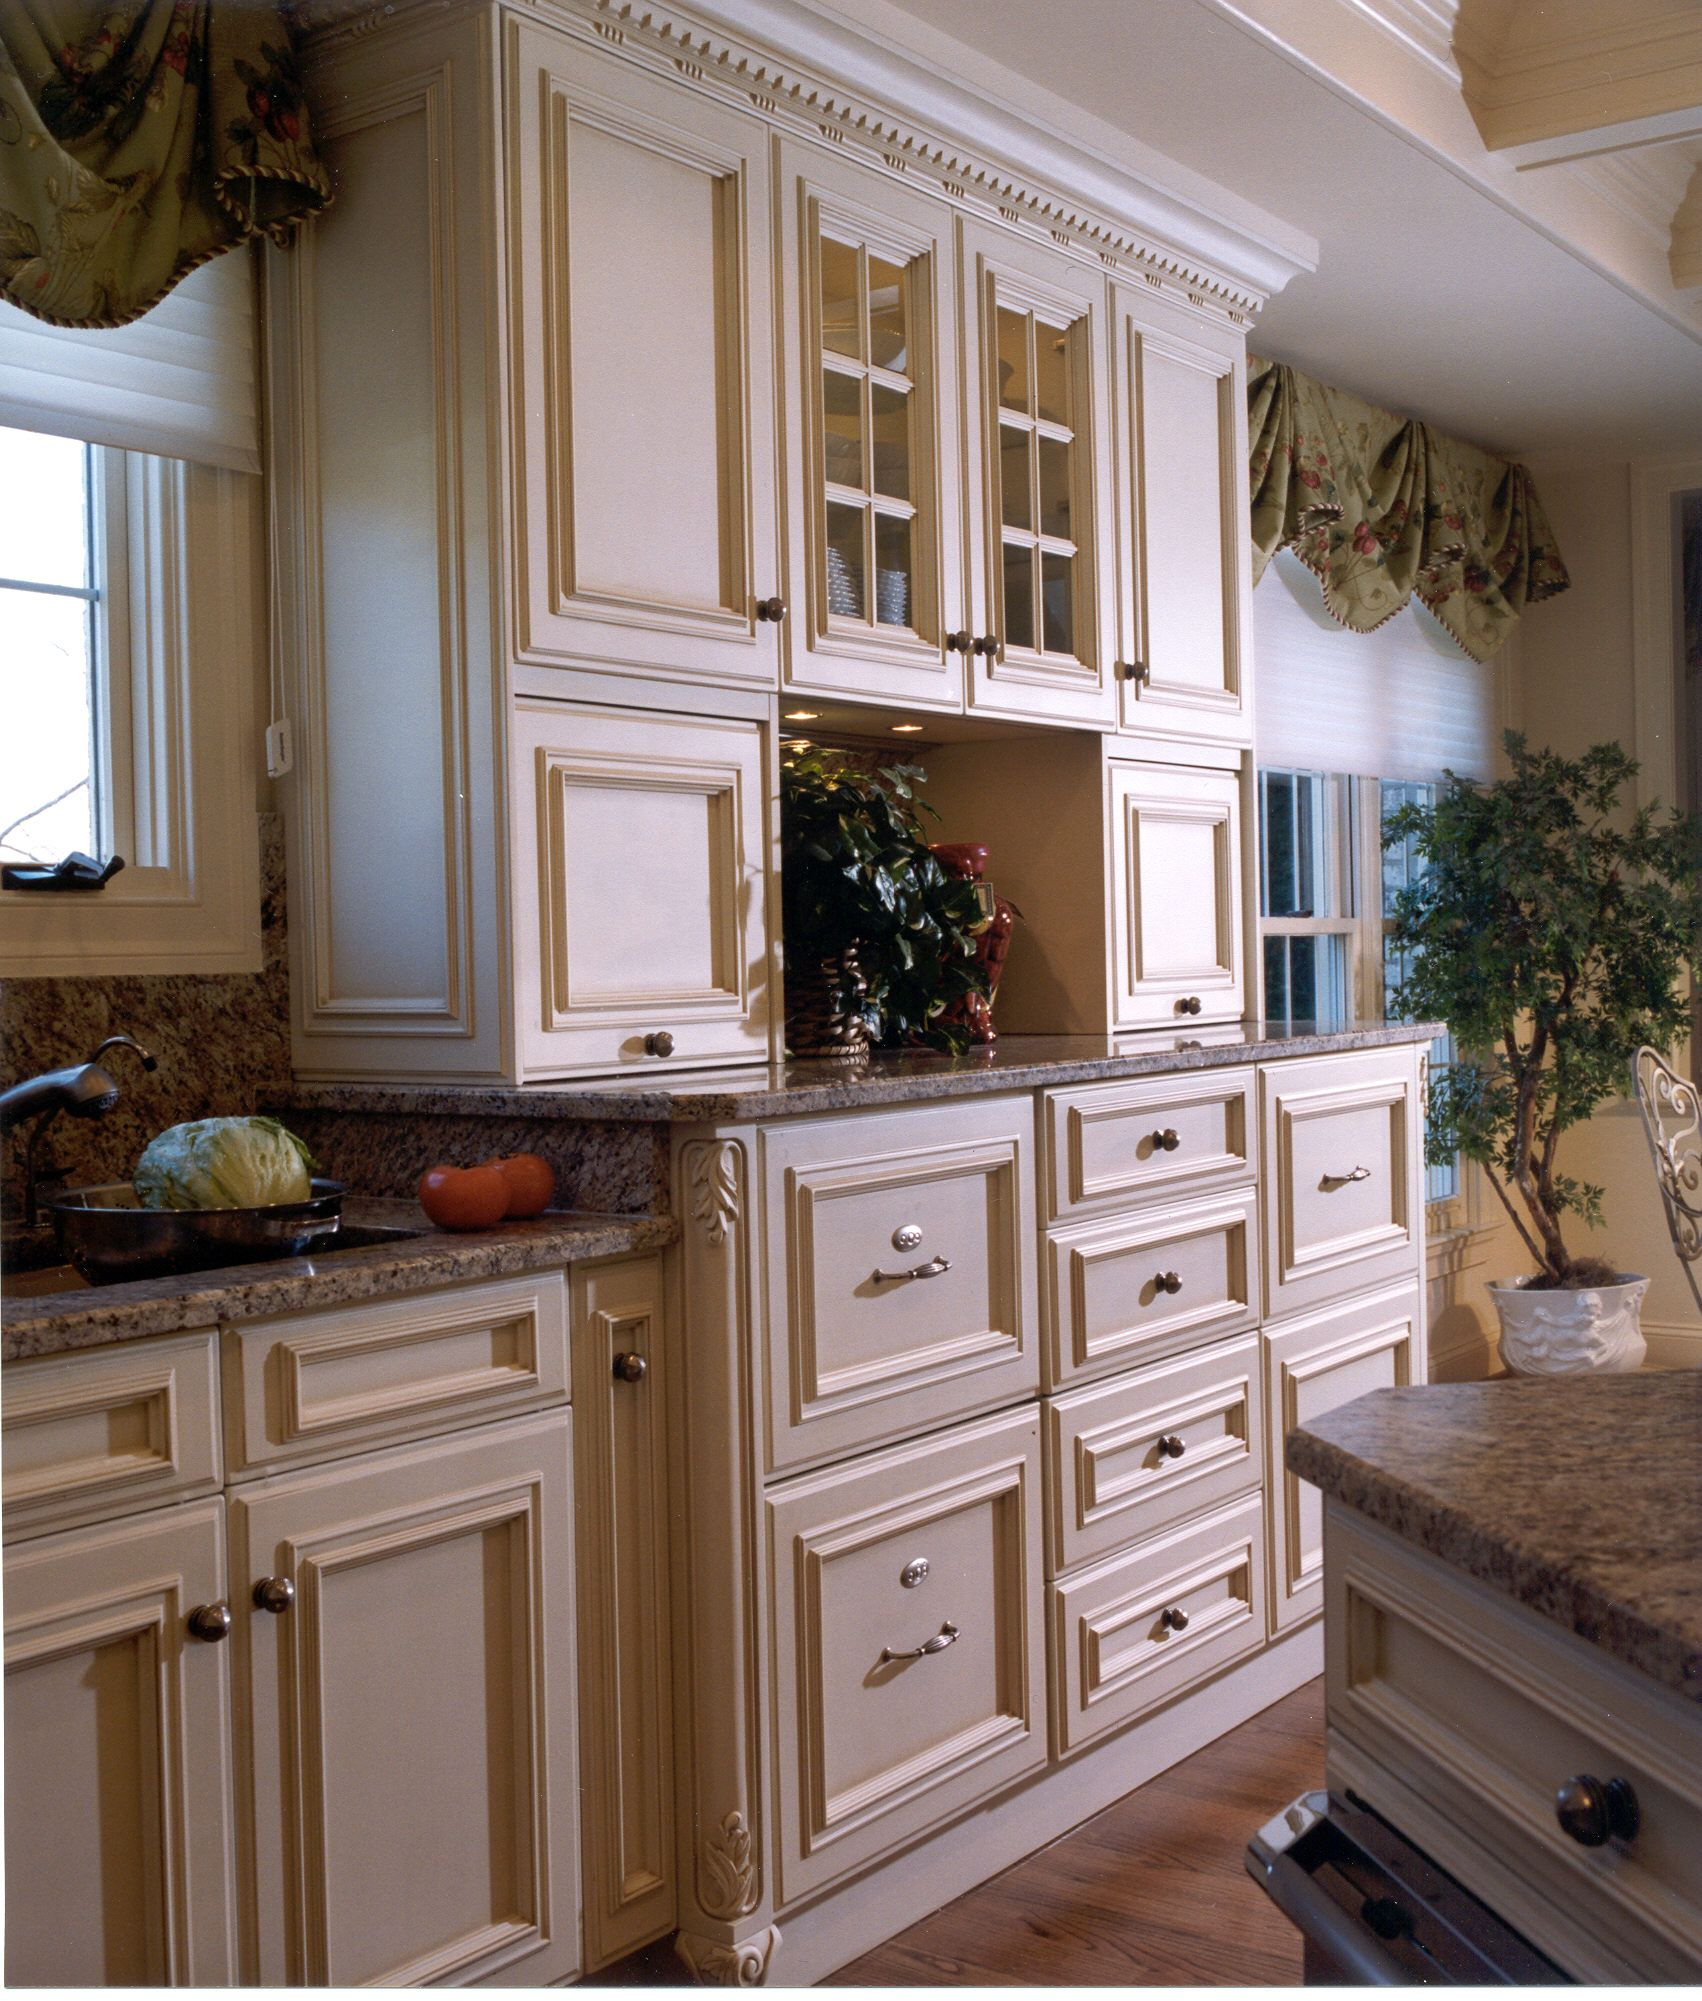 traditional kitchen refrigerator drawers appliance garages glass door cabinets traditional on kitchen organization cabinet layout id=66349